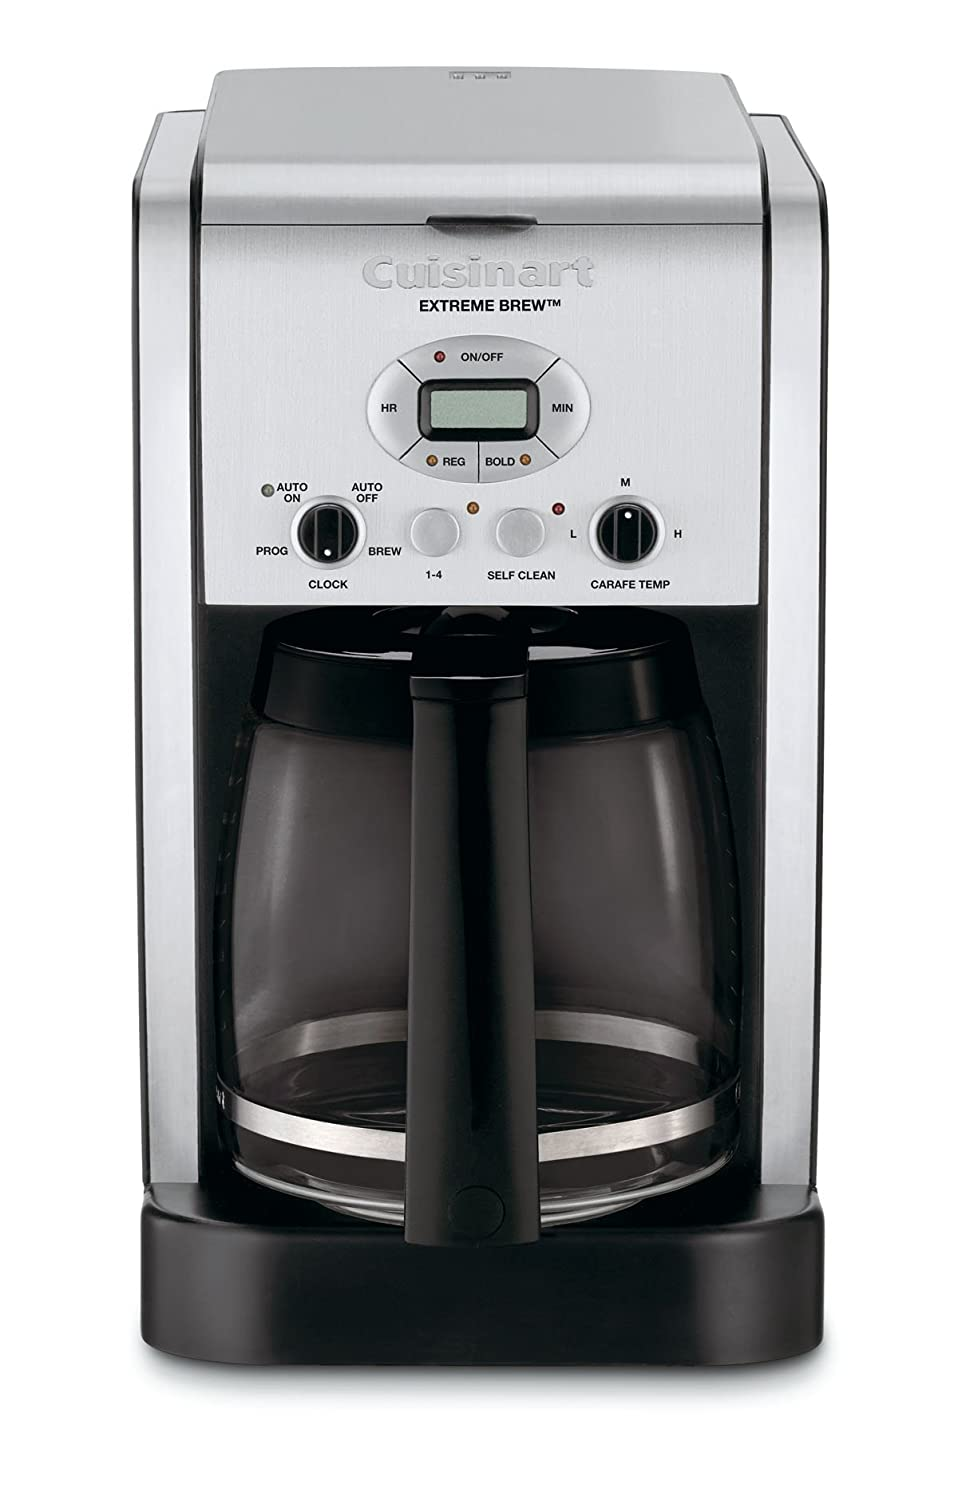 CuisinArt DCC-2650 - The 12 Cup Kitchen Essential: A Coffee Making Appliance For Every Day Use